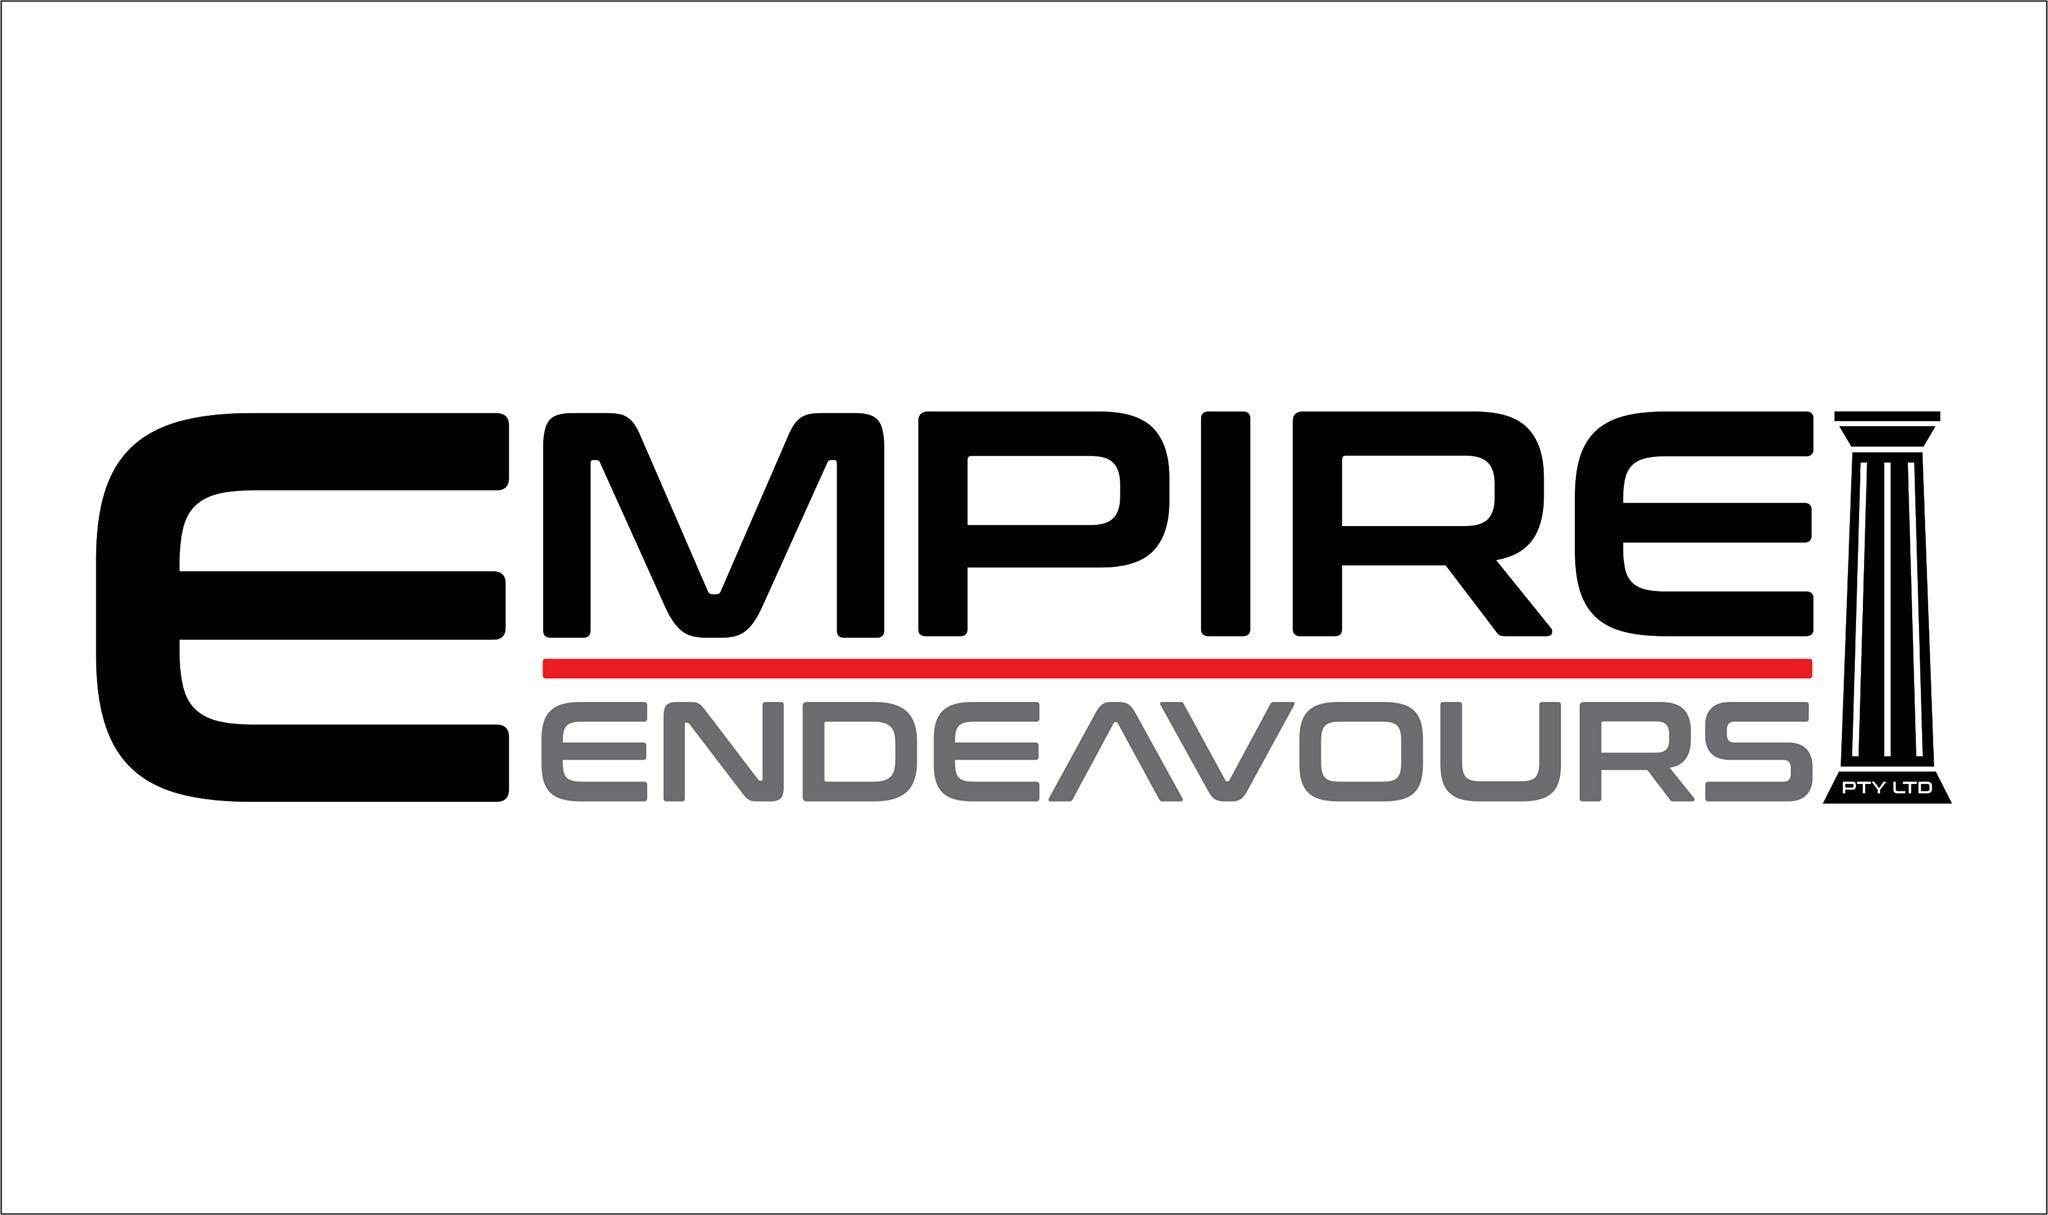 Empire Endeavours Pty Ltd